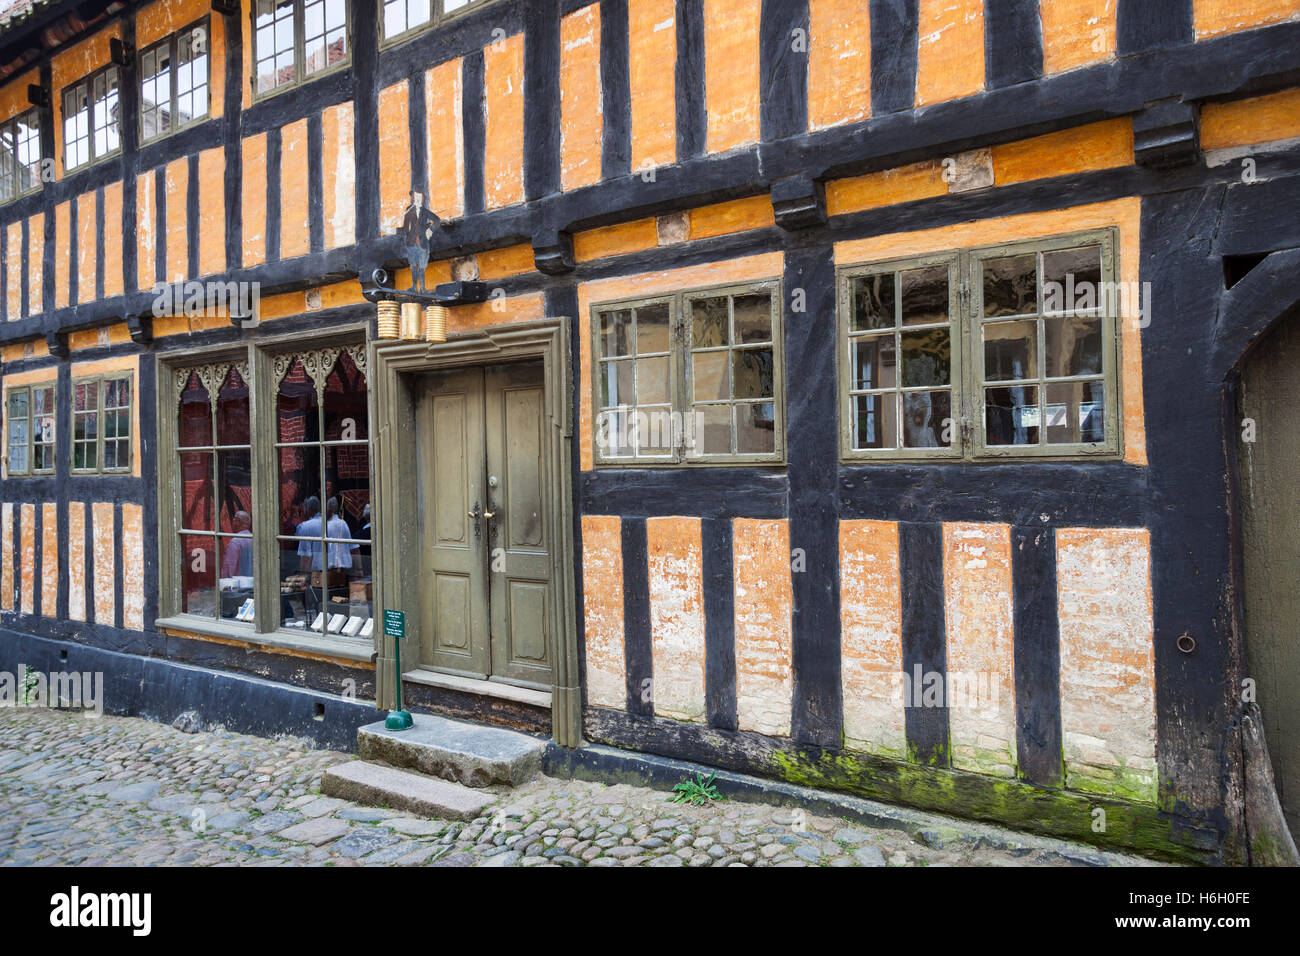 The Tobacconist's shop, Den Gamle By, Aarhus, Denmark - Stock Image